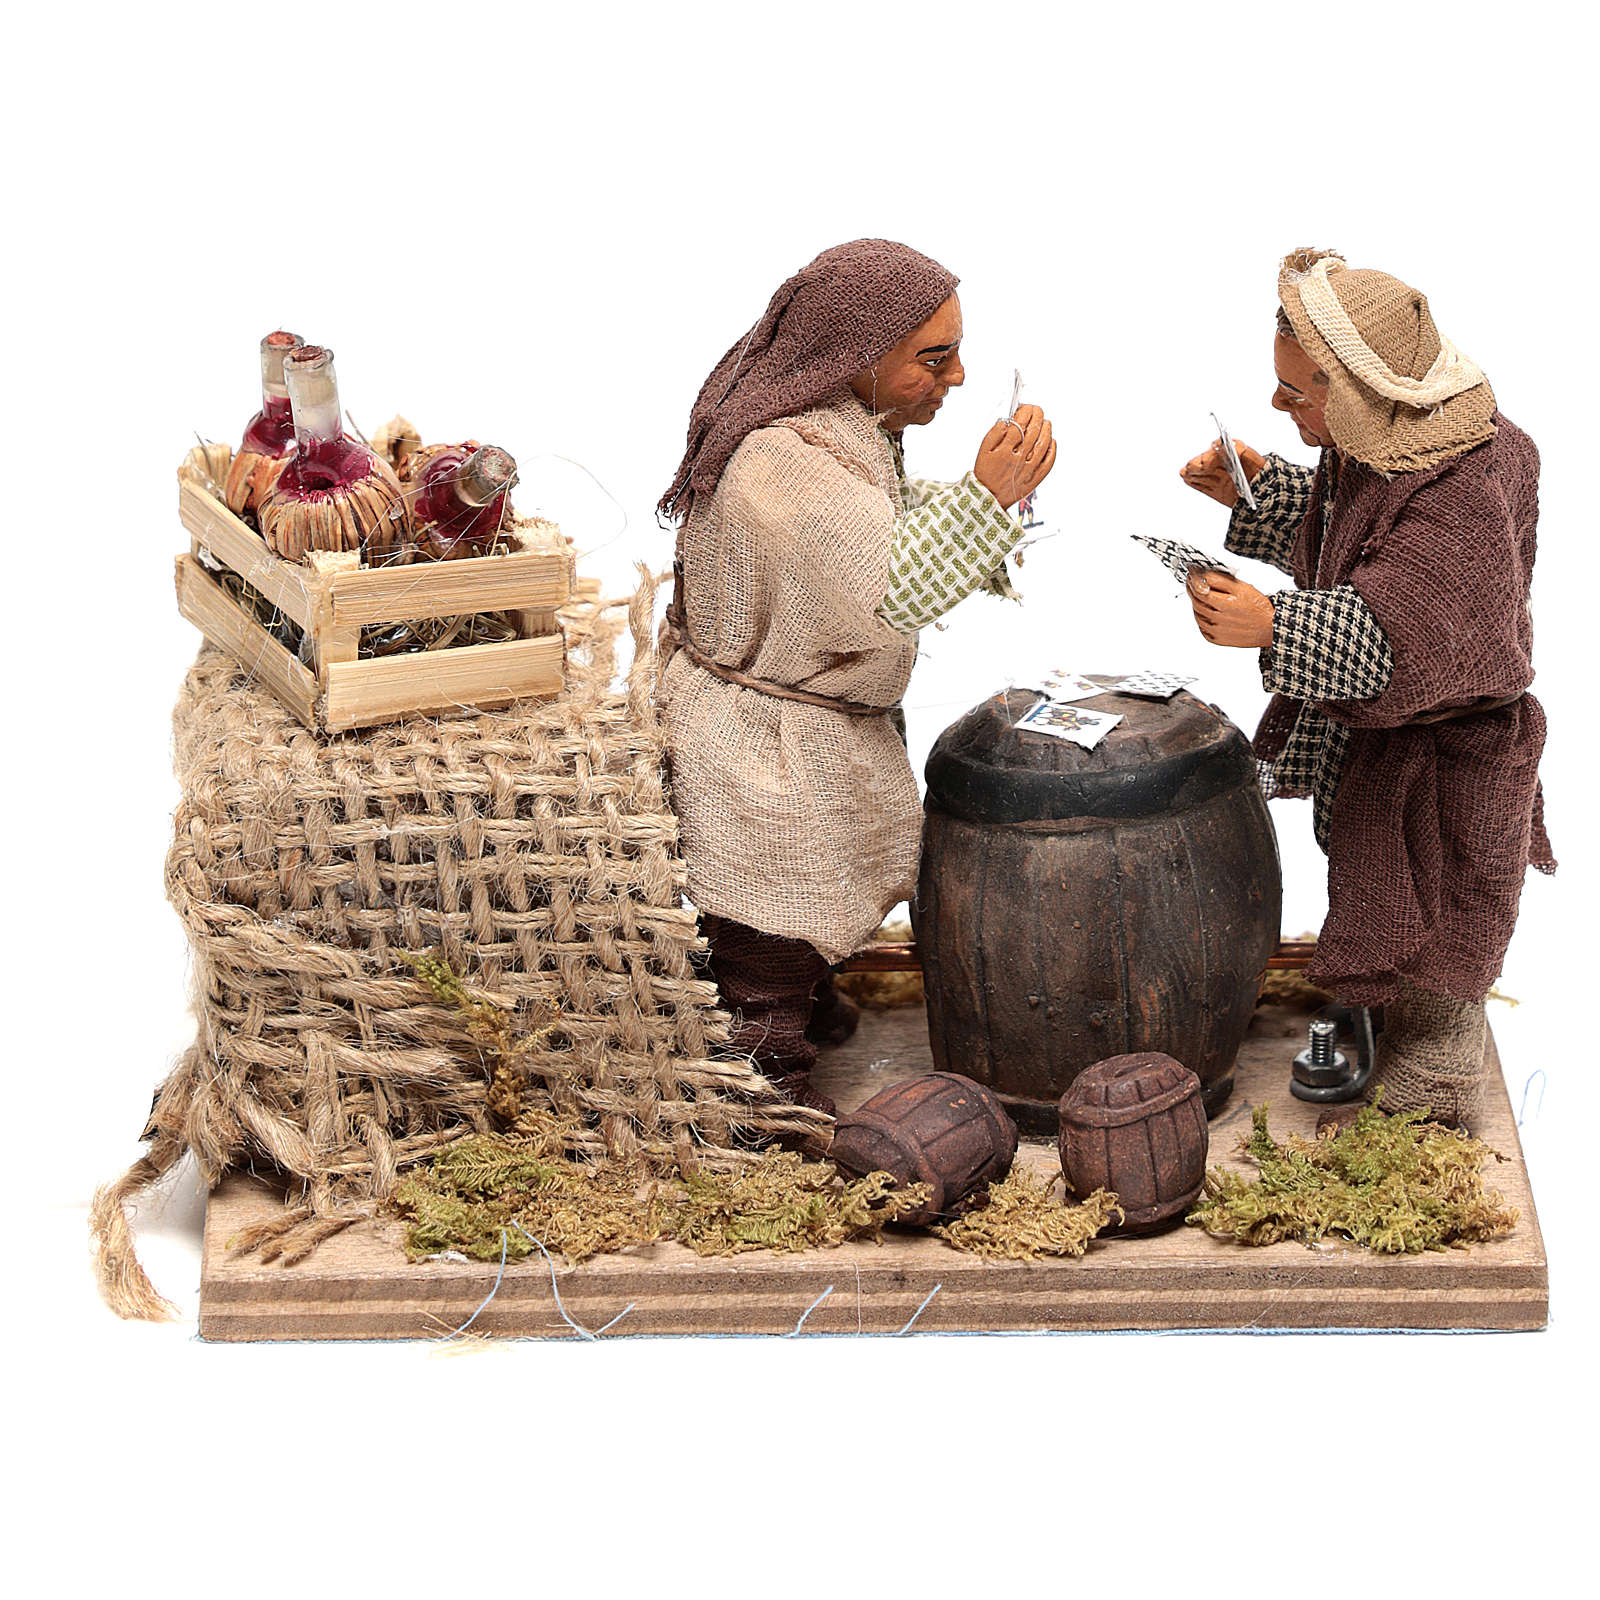 Moving card players 10x15x10 cm for Neapolitan Nativity Scene of 10 cm 4